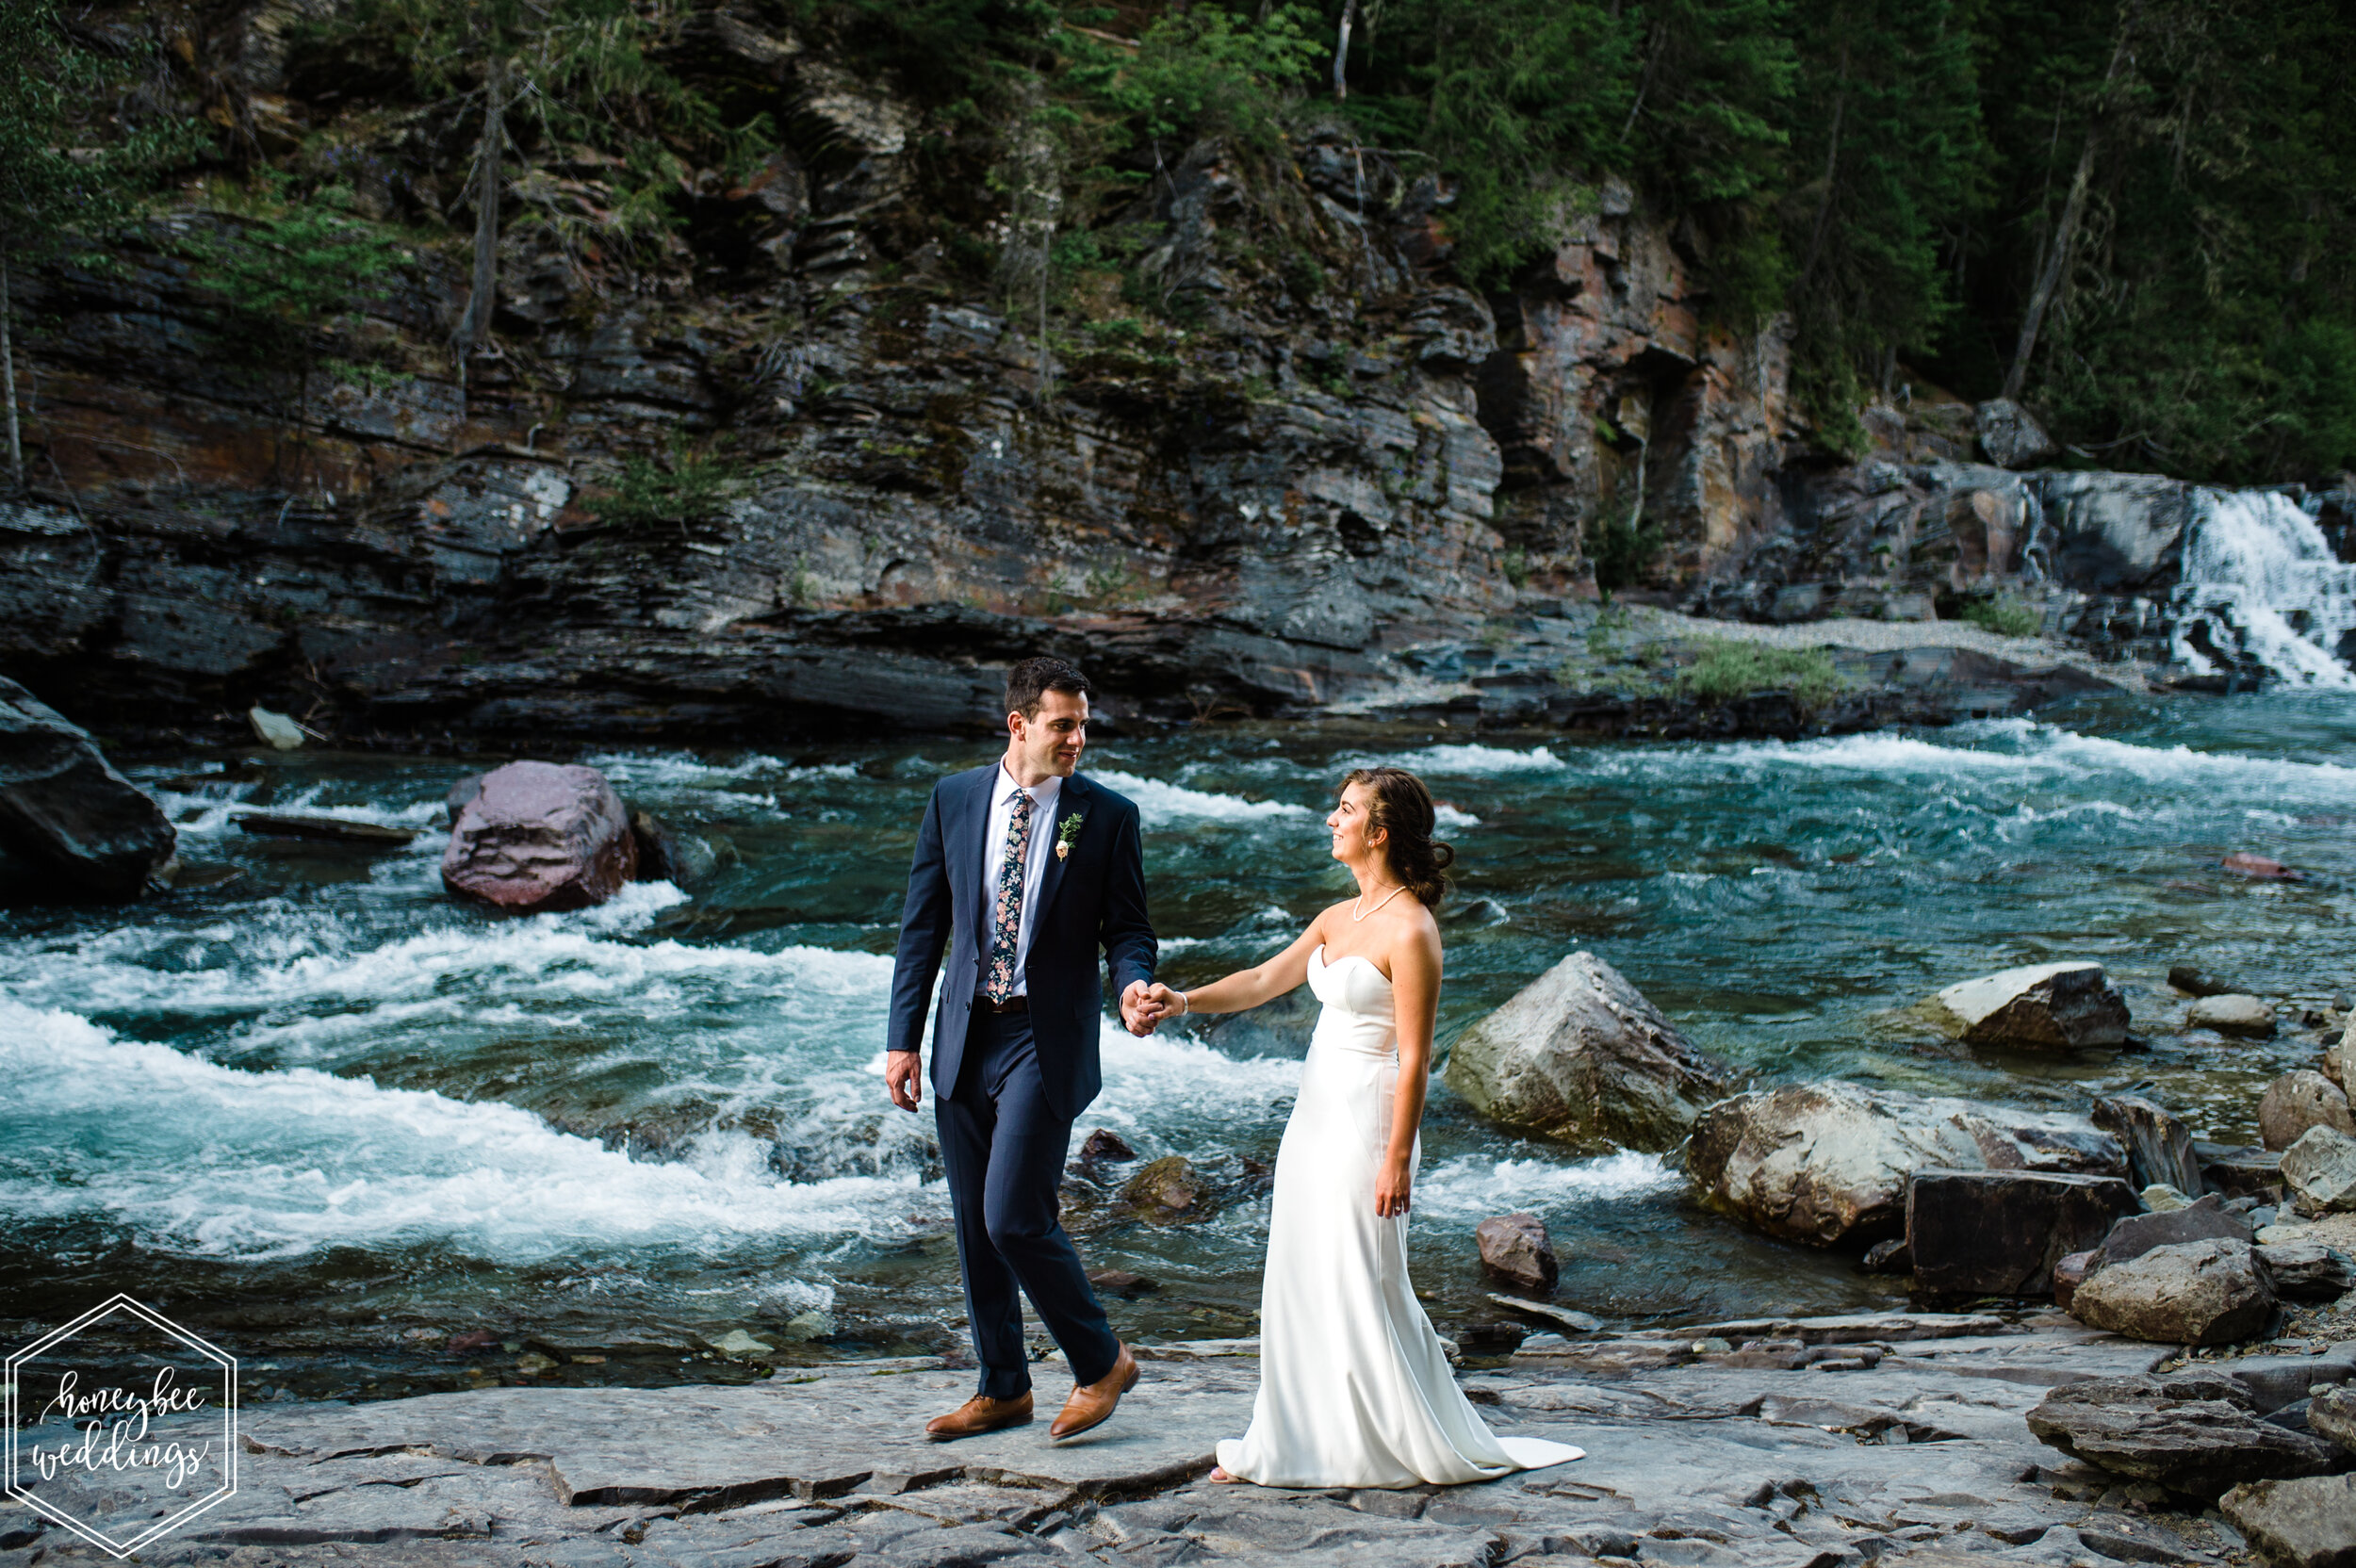 022Glacier National Park Wedding_Glacier Outdoor Center_Honeybee Weddings_Anna & Seth_July 21, 2019-2515.jpg